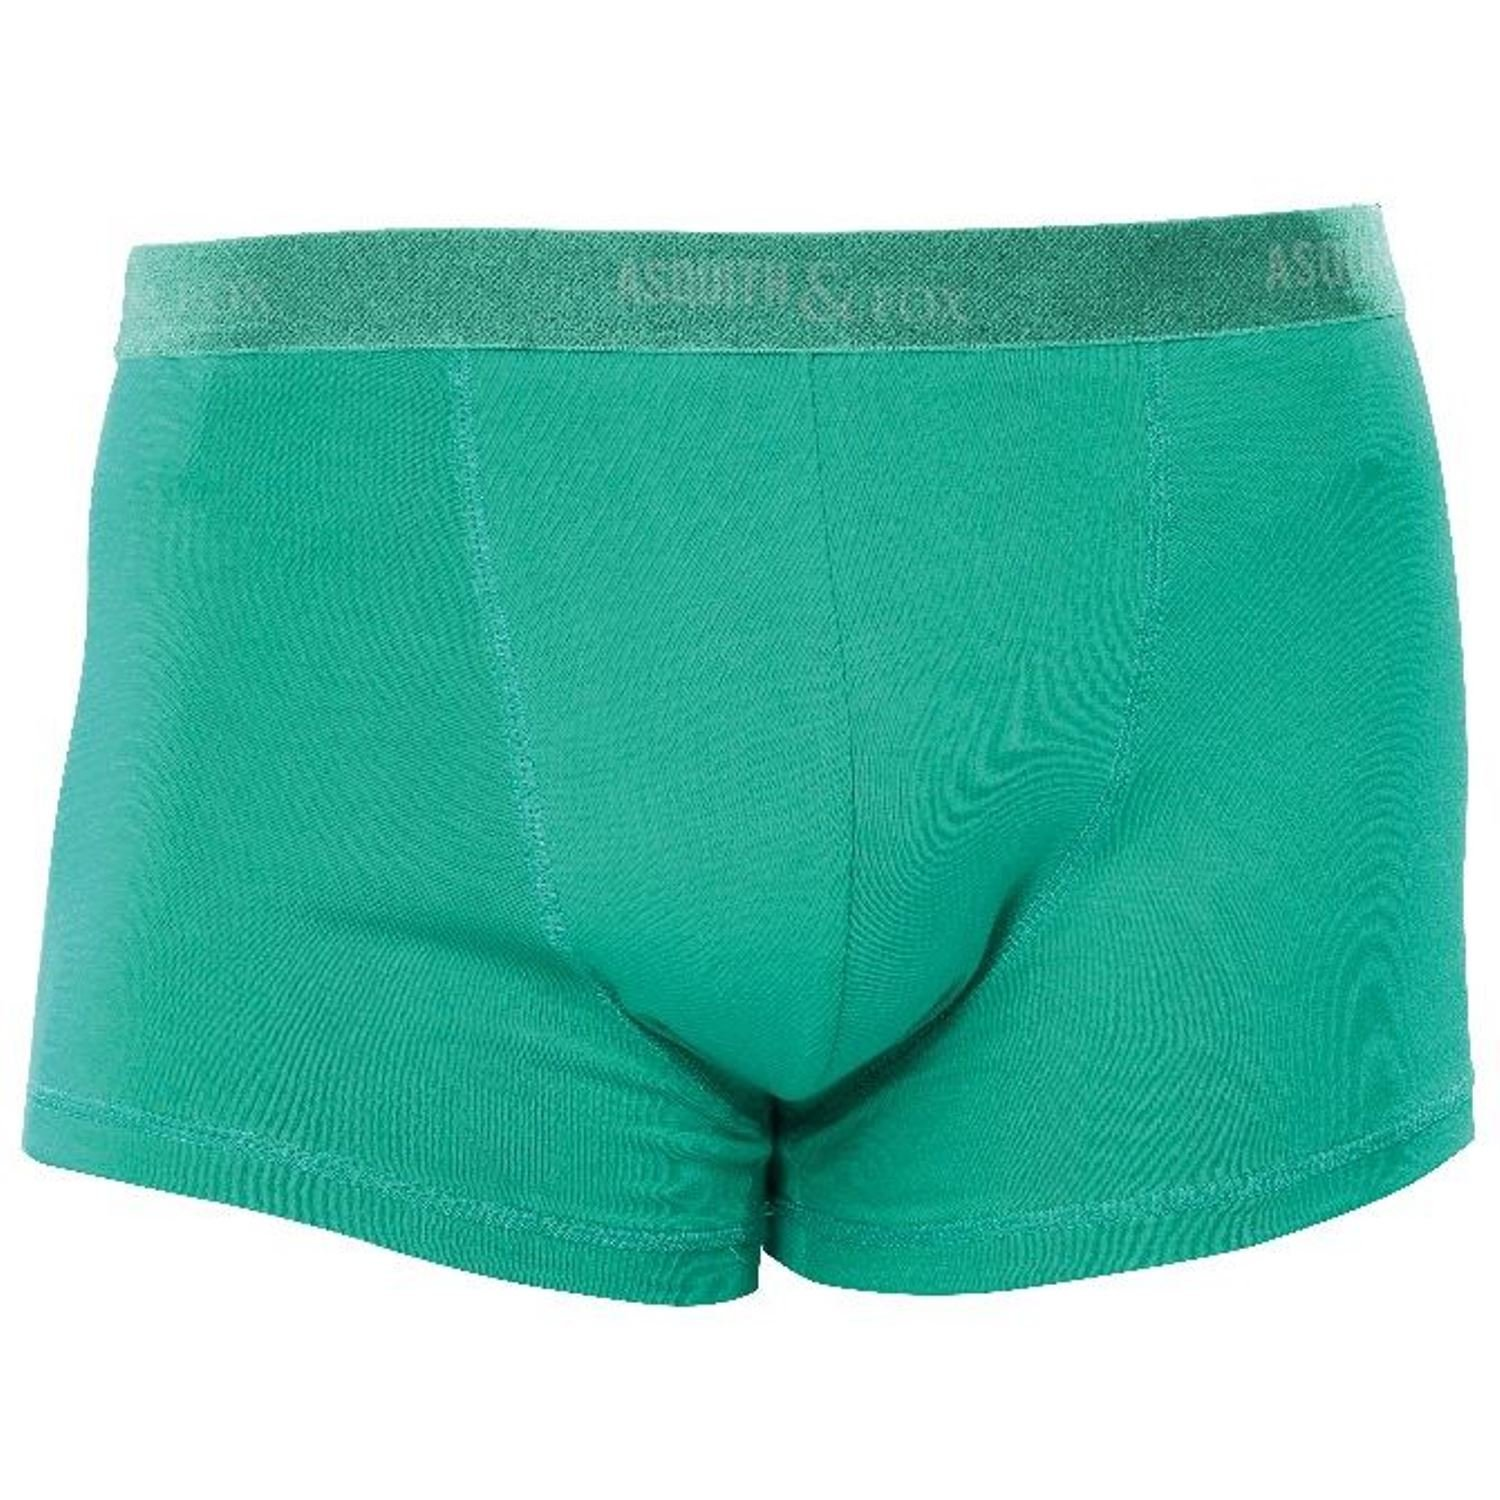 Asquith Fox Mens 2 Pairs Shorty Trunk Boxers